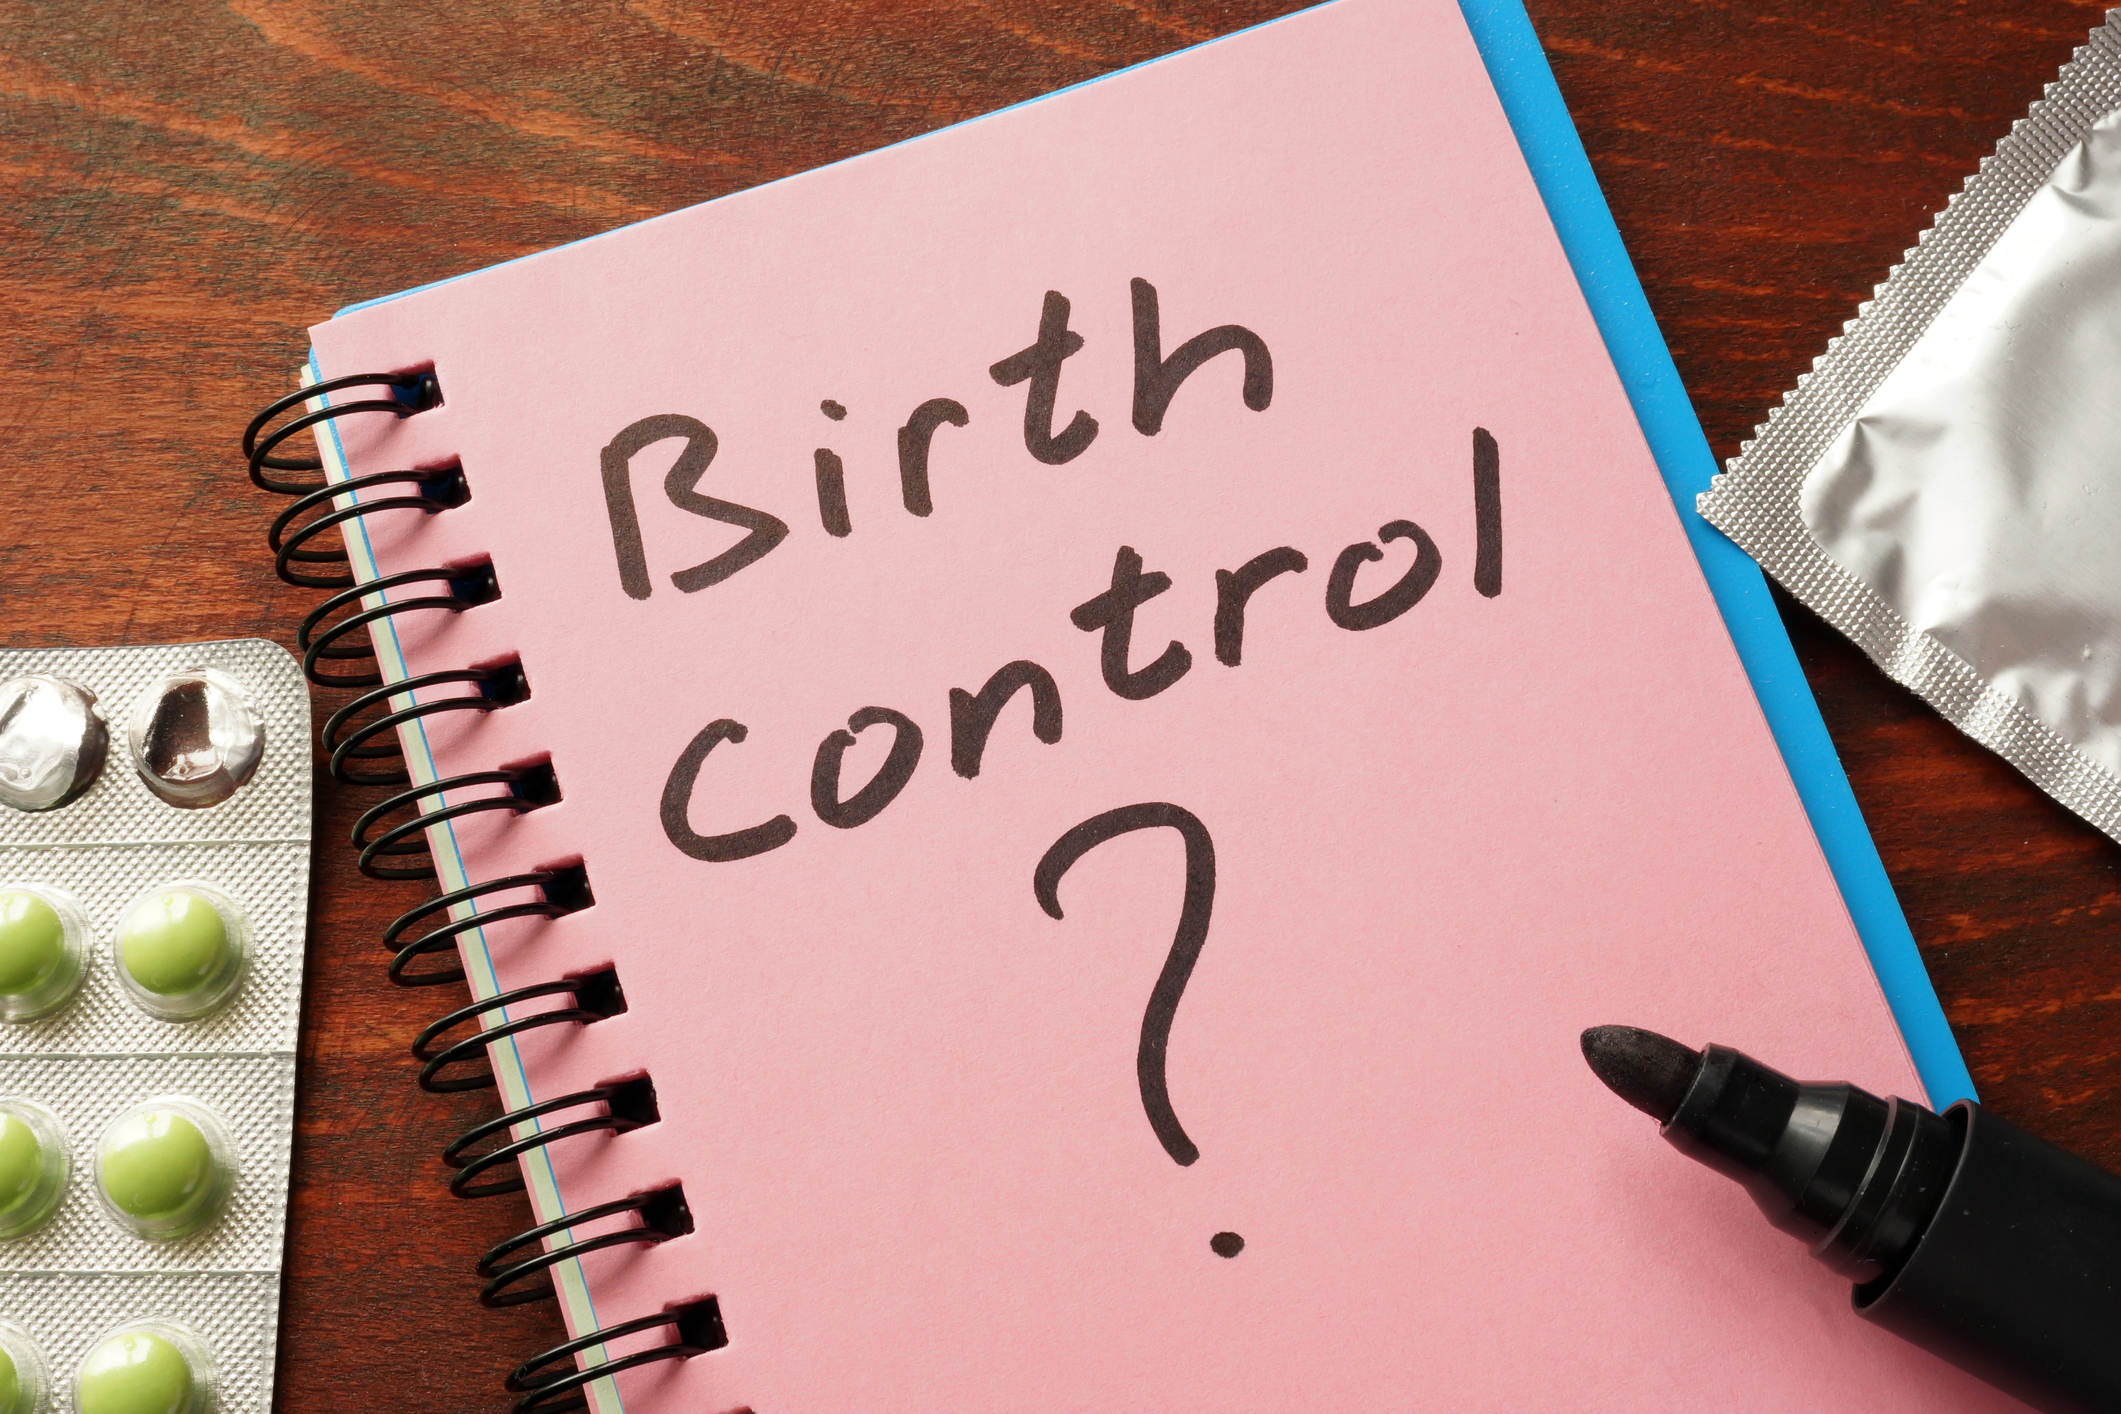 A book with birth control written on it